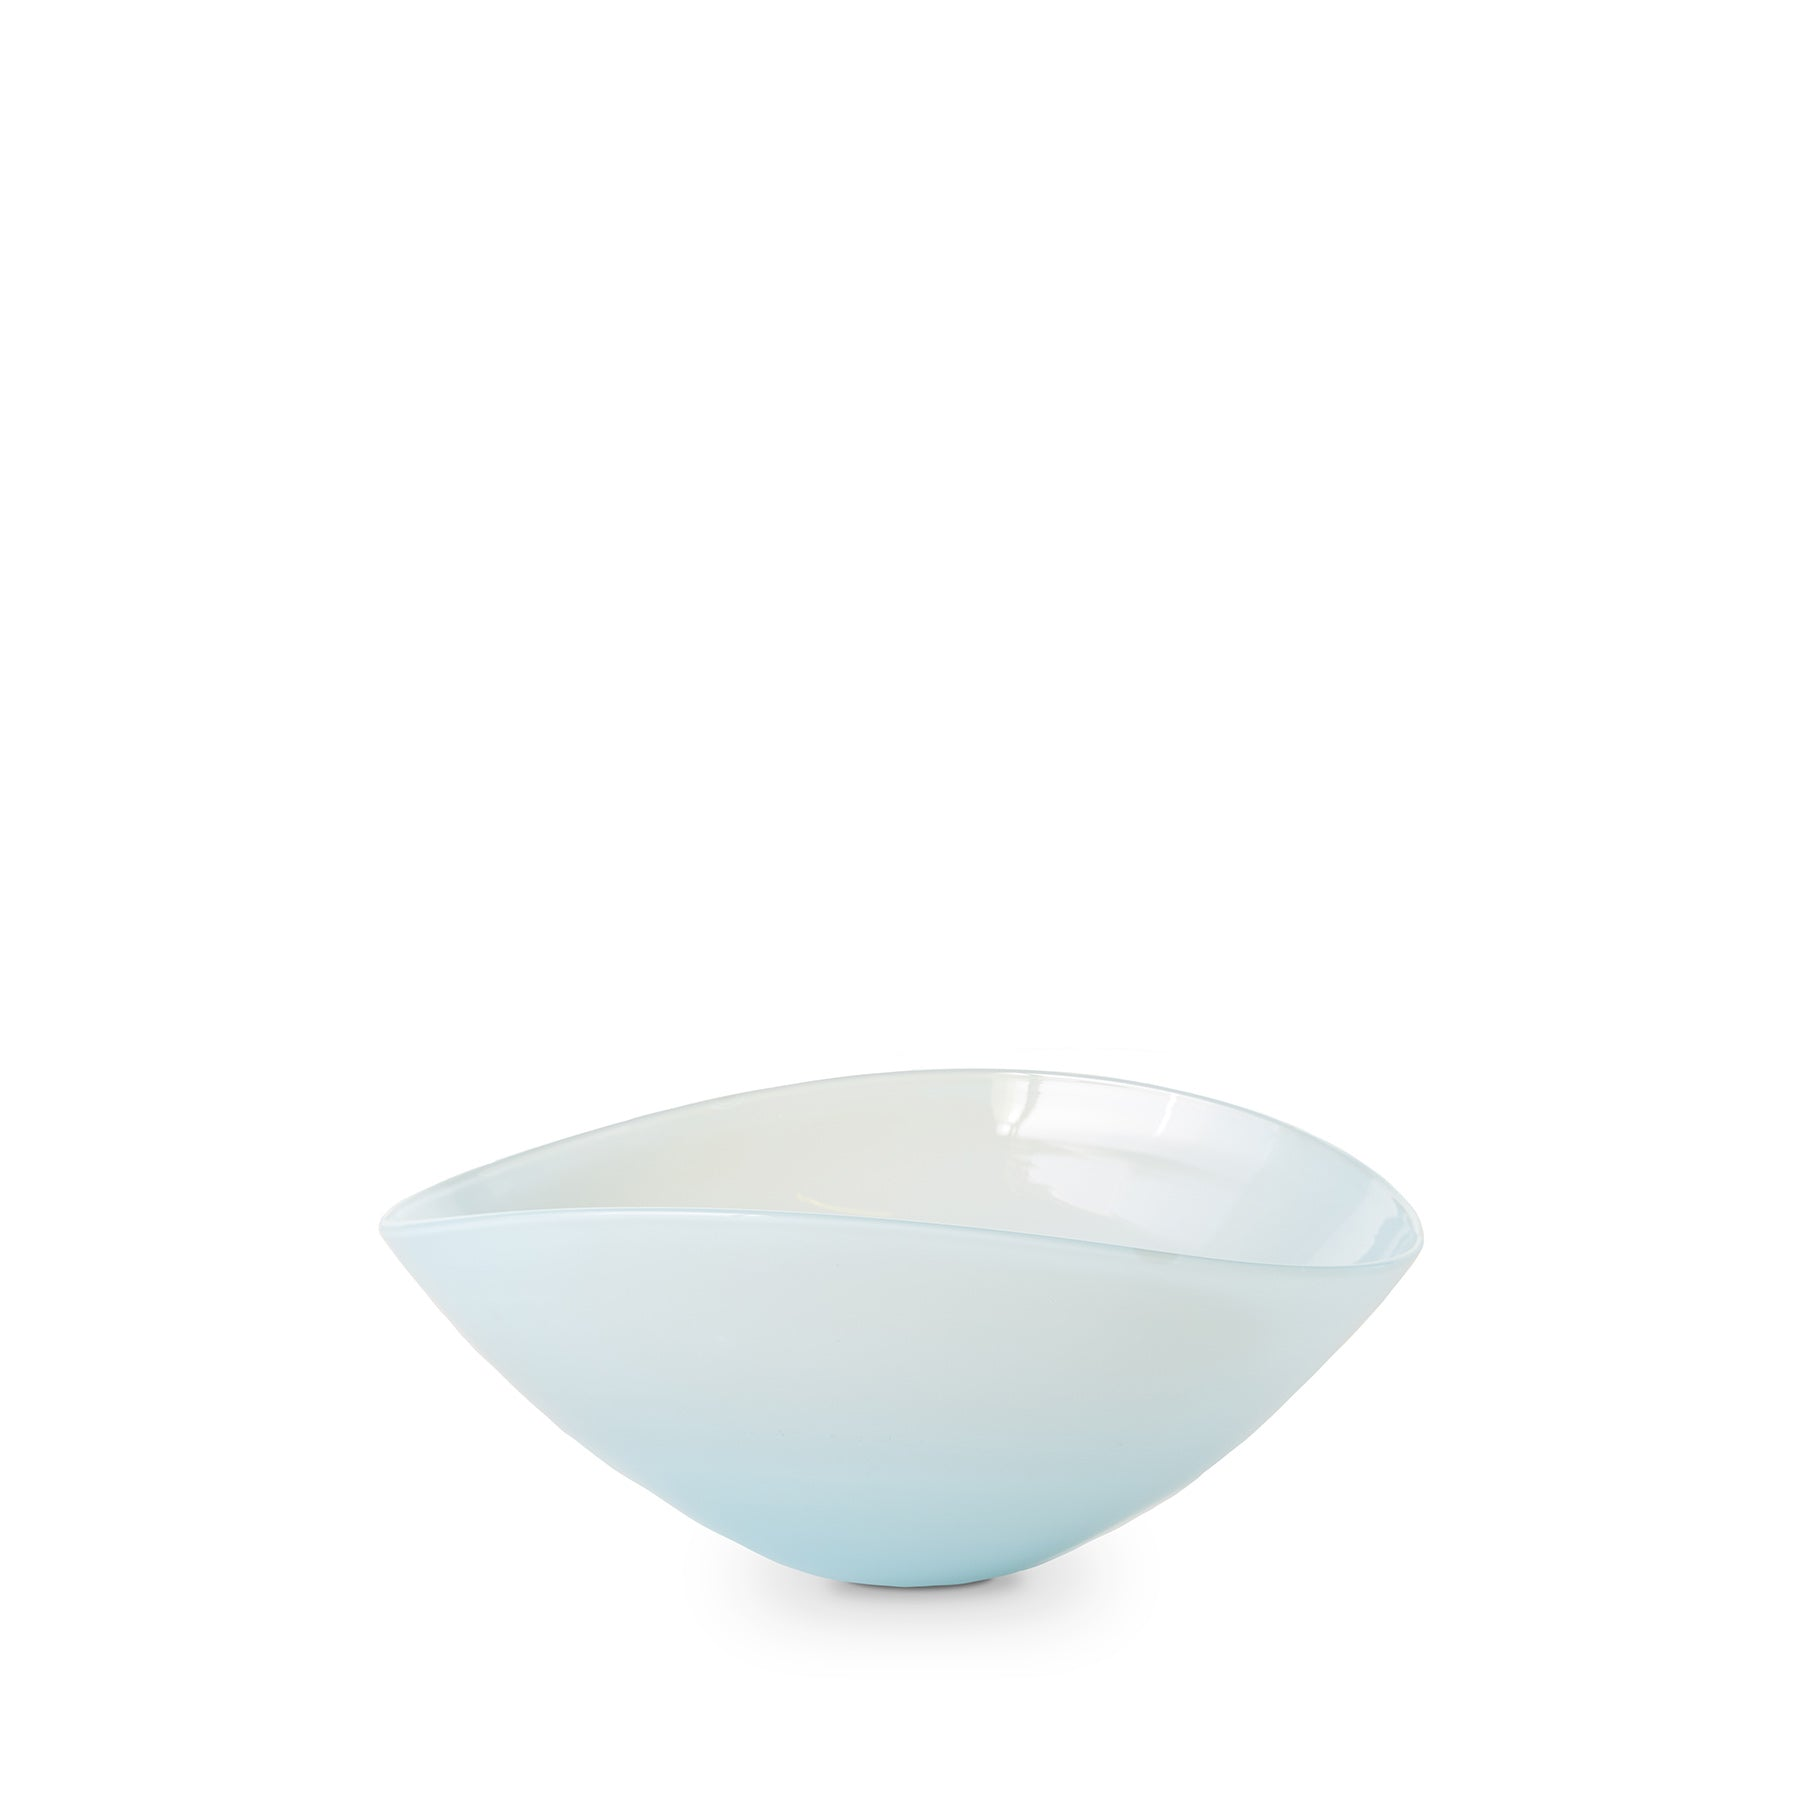 Large Lotus Bowl in Light Blue Zoom Image 1